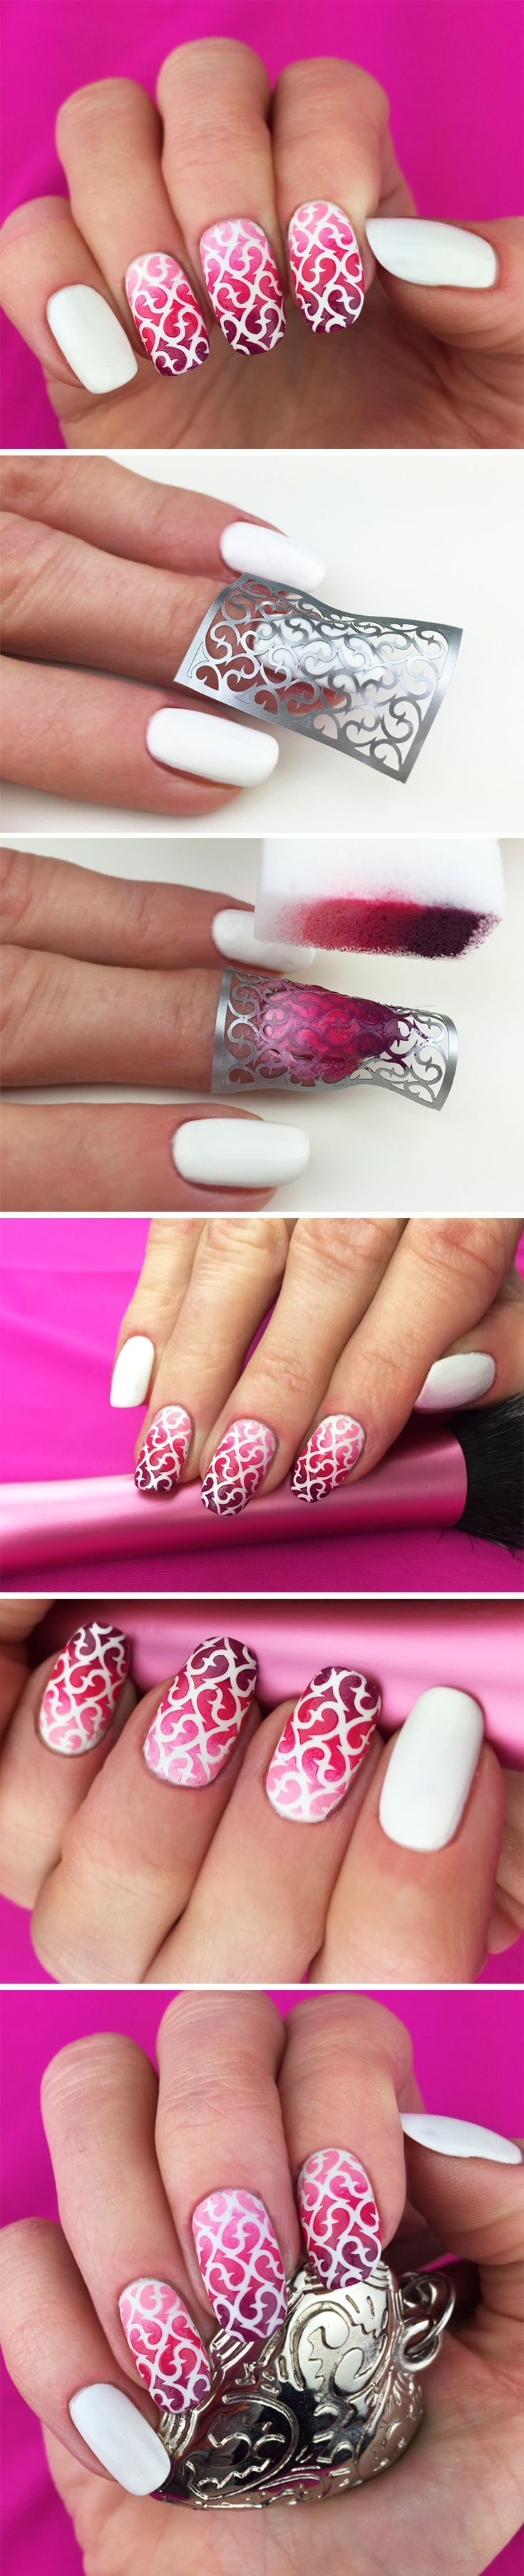 Best 25 crazy nail art ideas on pinterest nail art fun nails stunning ombre patterned nail art prinsesfo Choice Image